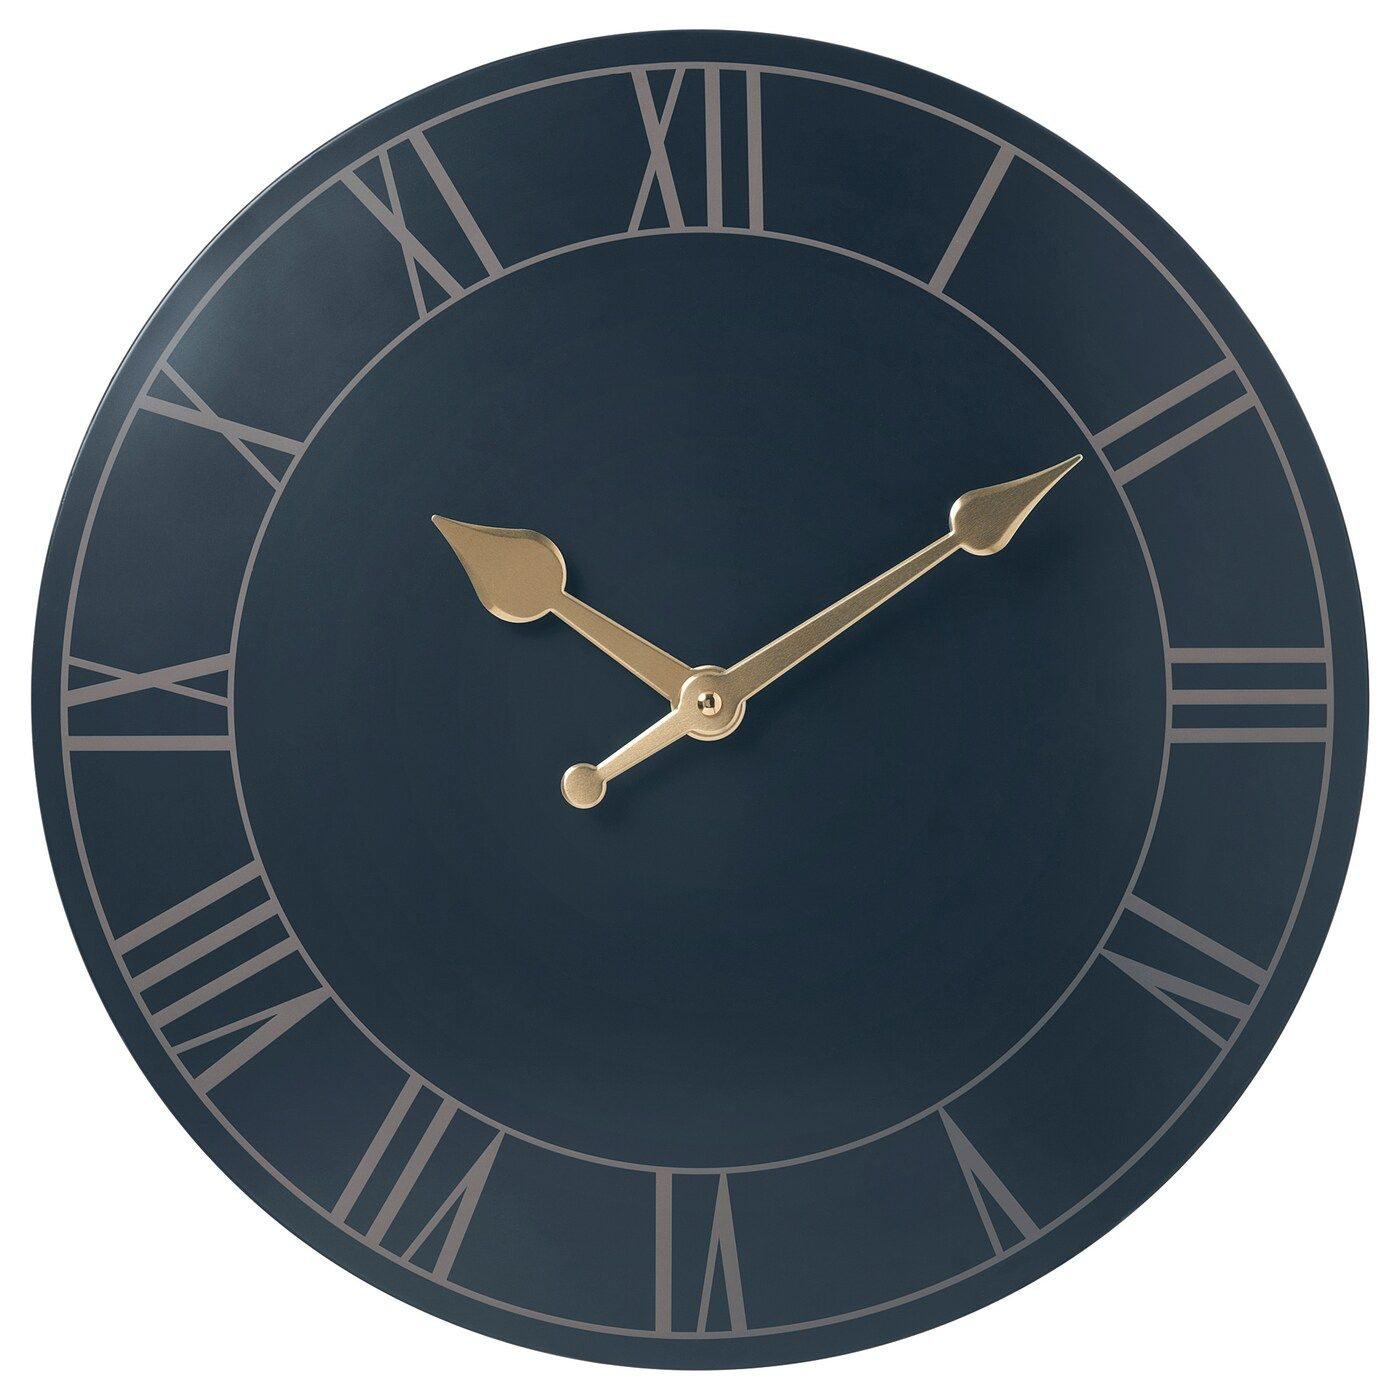 Ikea Pollett Wall Clock Dark Blue No Disturbing Ticking Sounds Since The Clock Has A Silent Quartz Movement Highly Accu In 2020 Blue Wall Clocks Wall Clock Clock